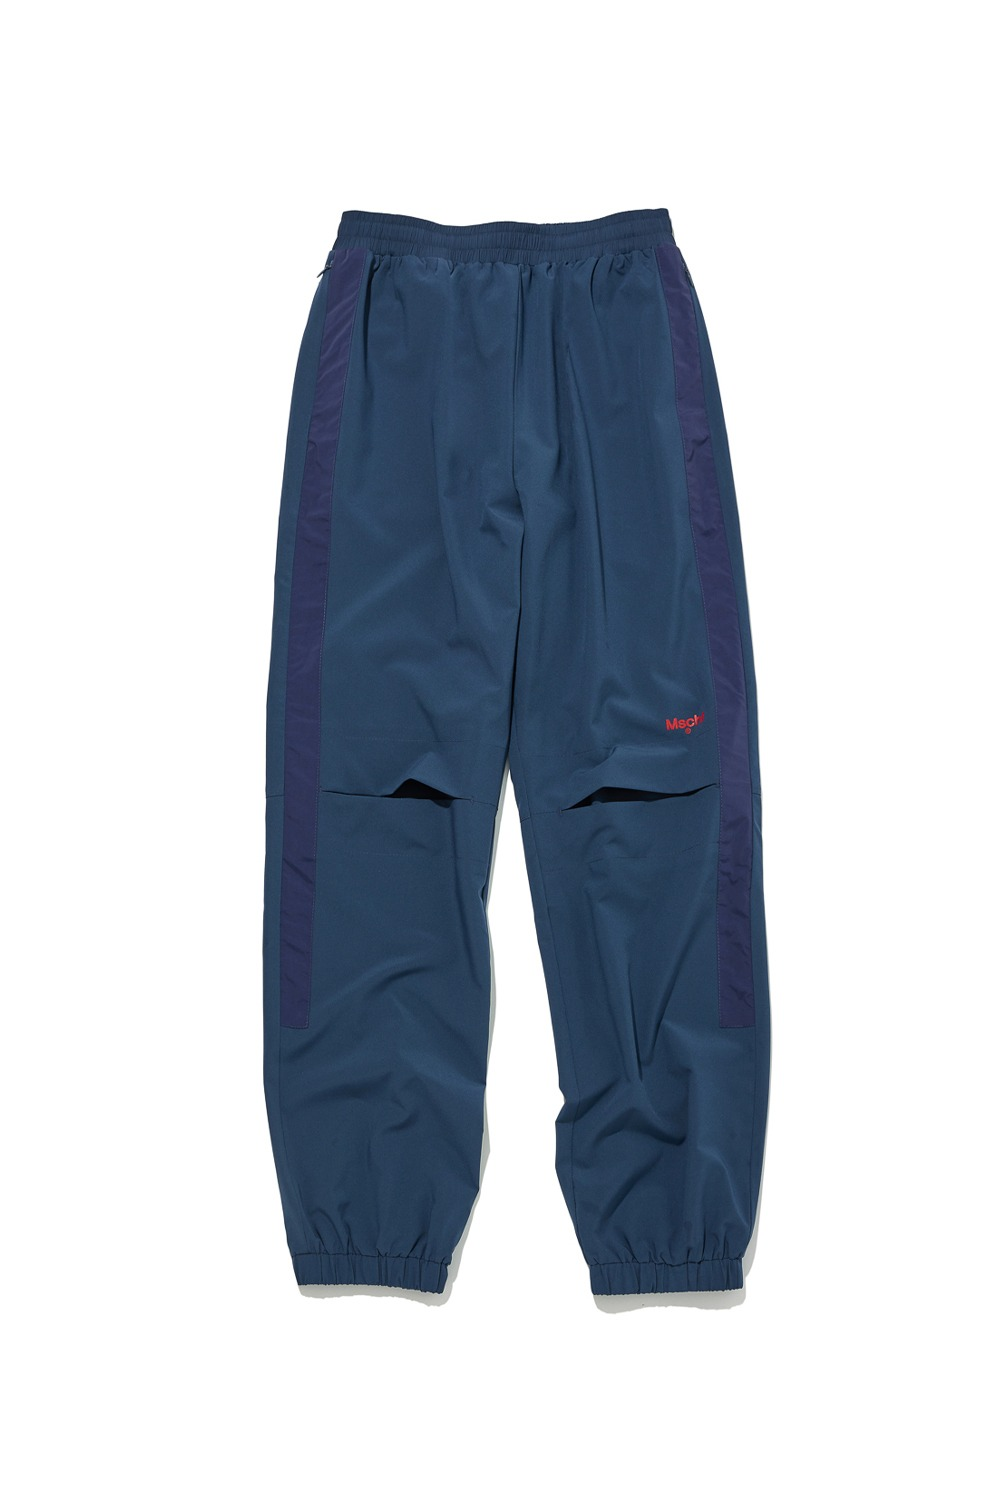 2021 CALL OUT_MSCHF TRACKSUIT PANTS_NAVY